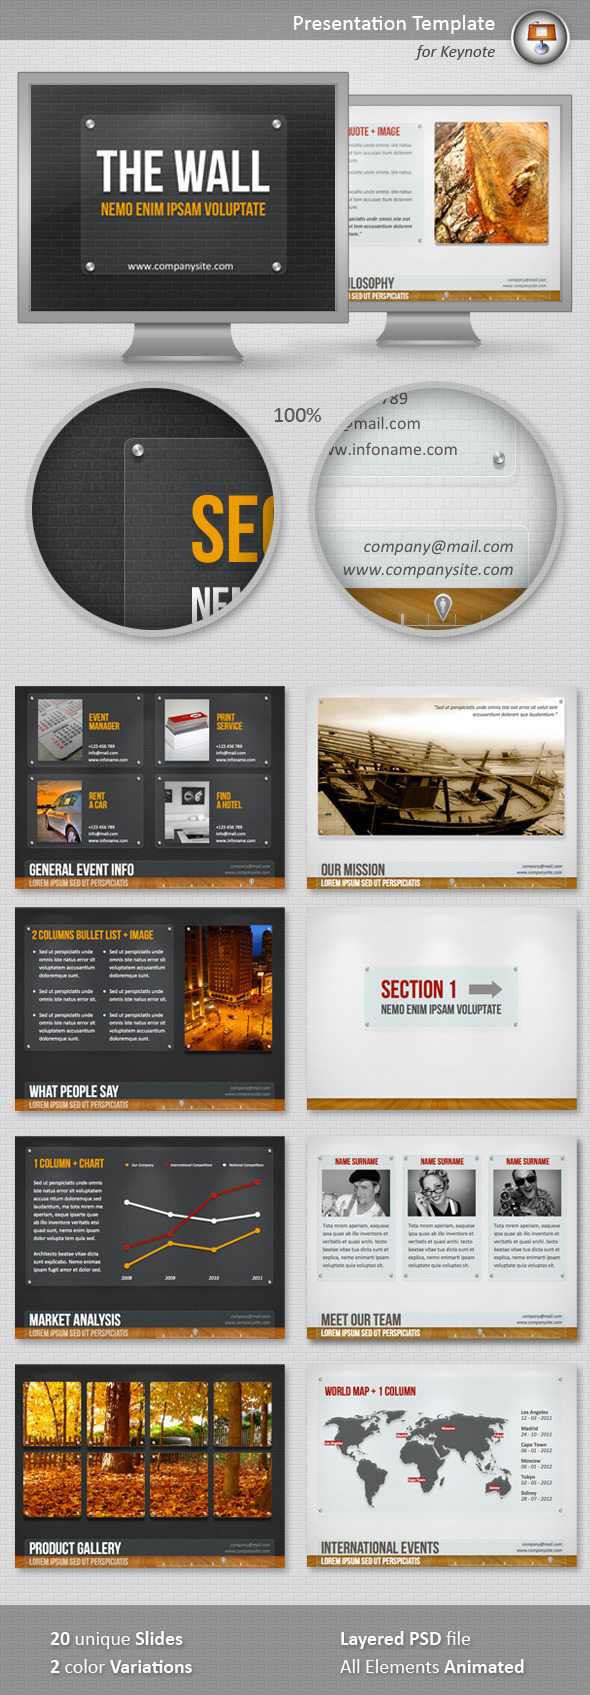 The Wall Keynote Template - Keynote Templates Presentation Templates